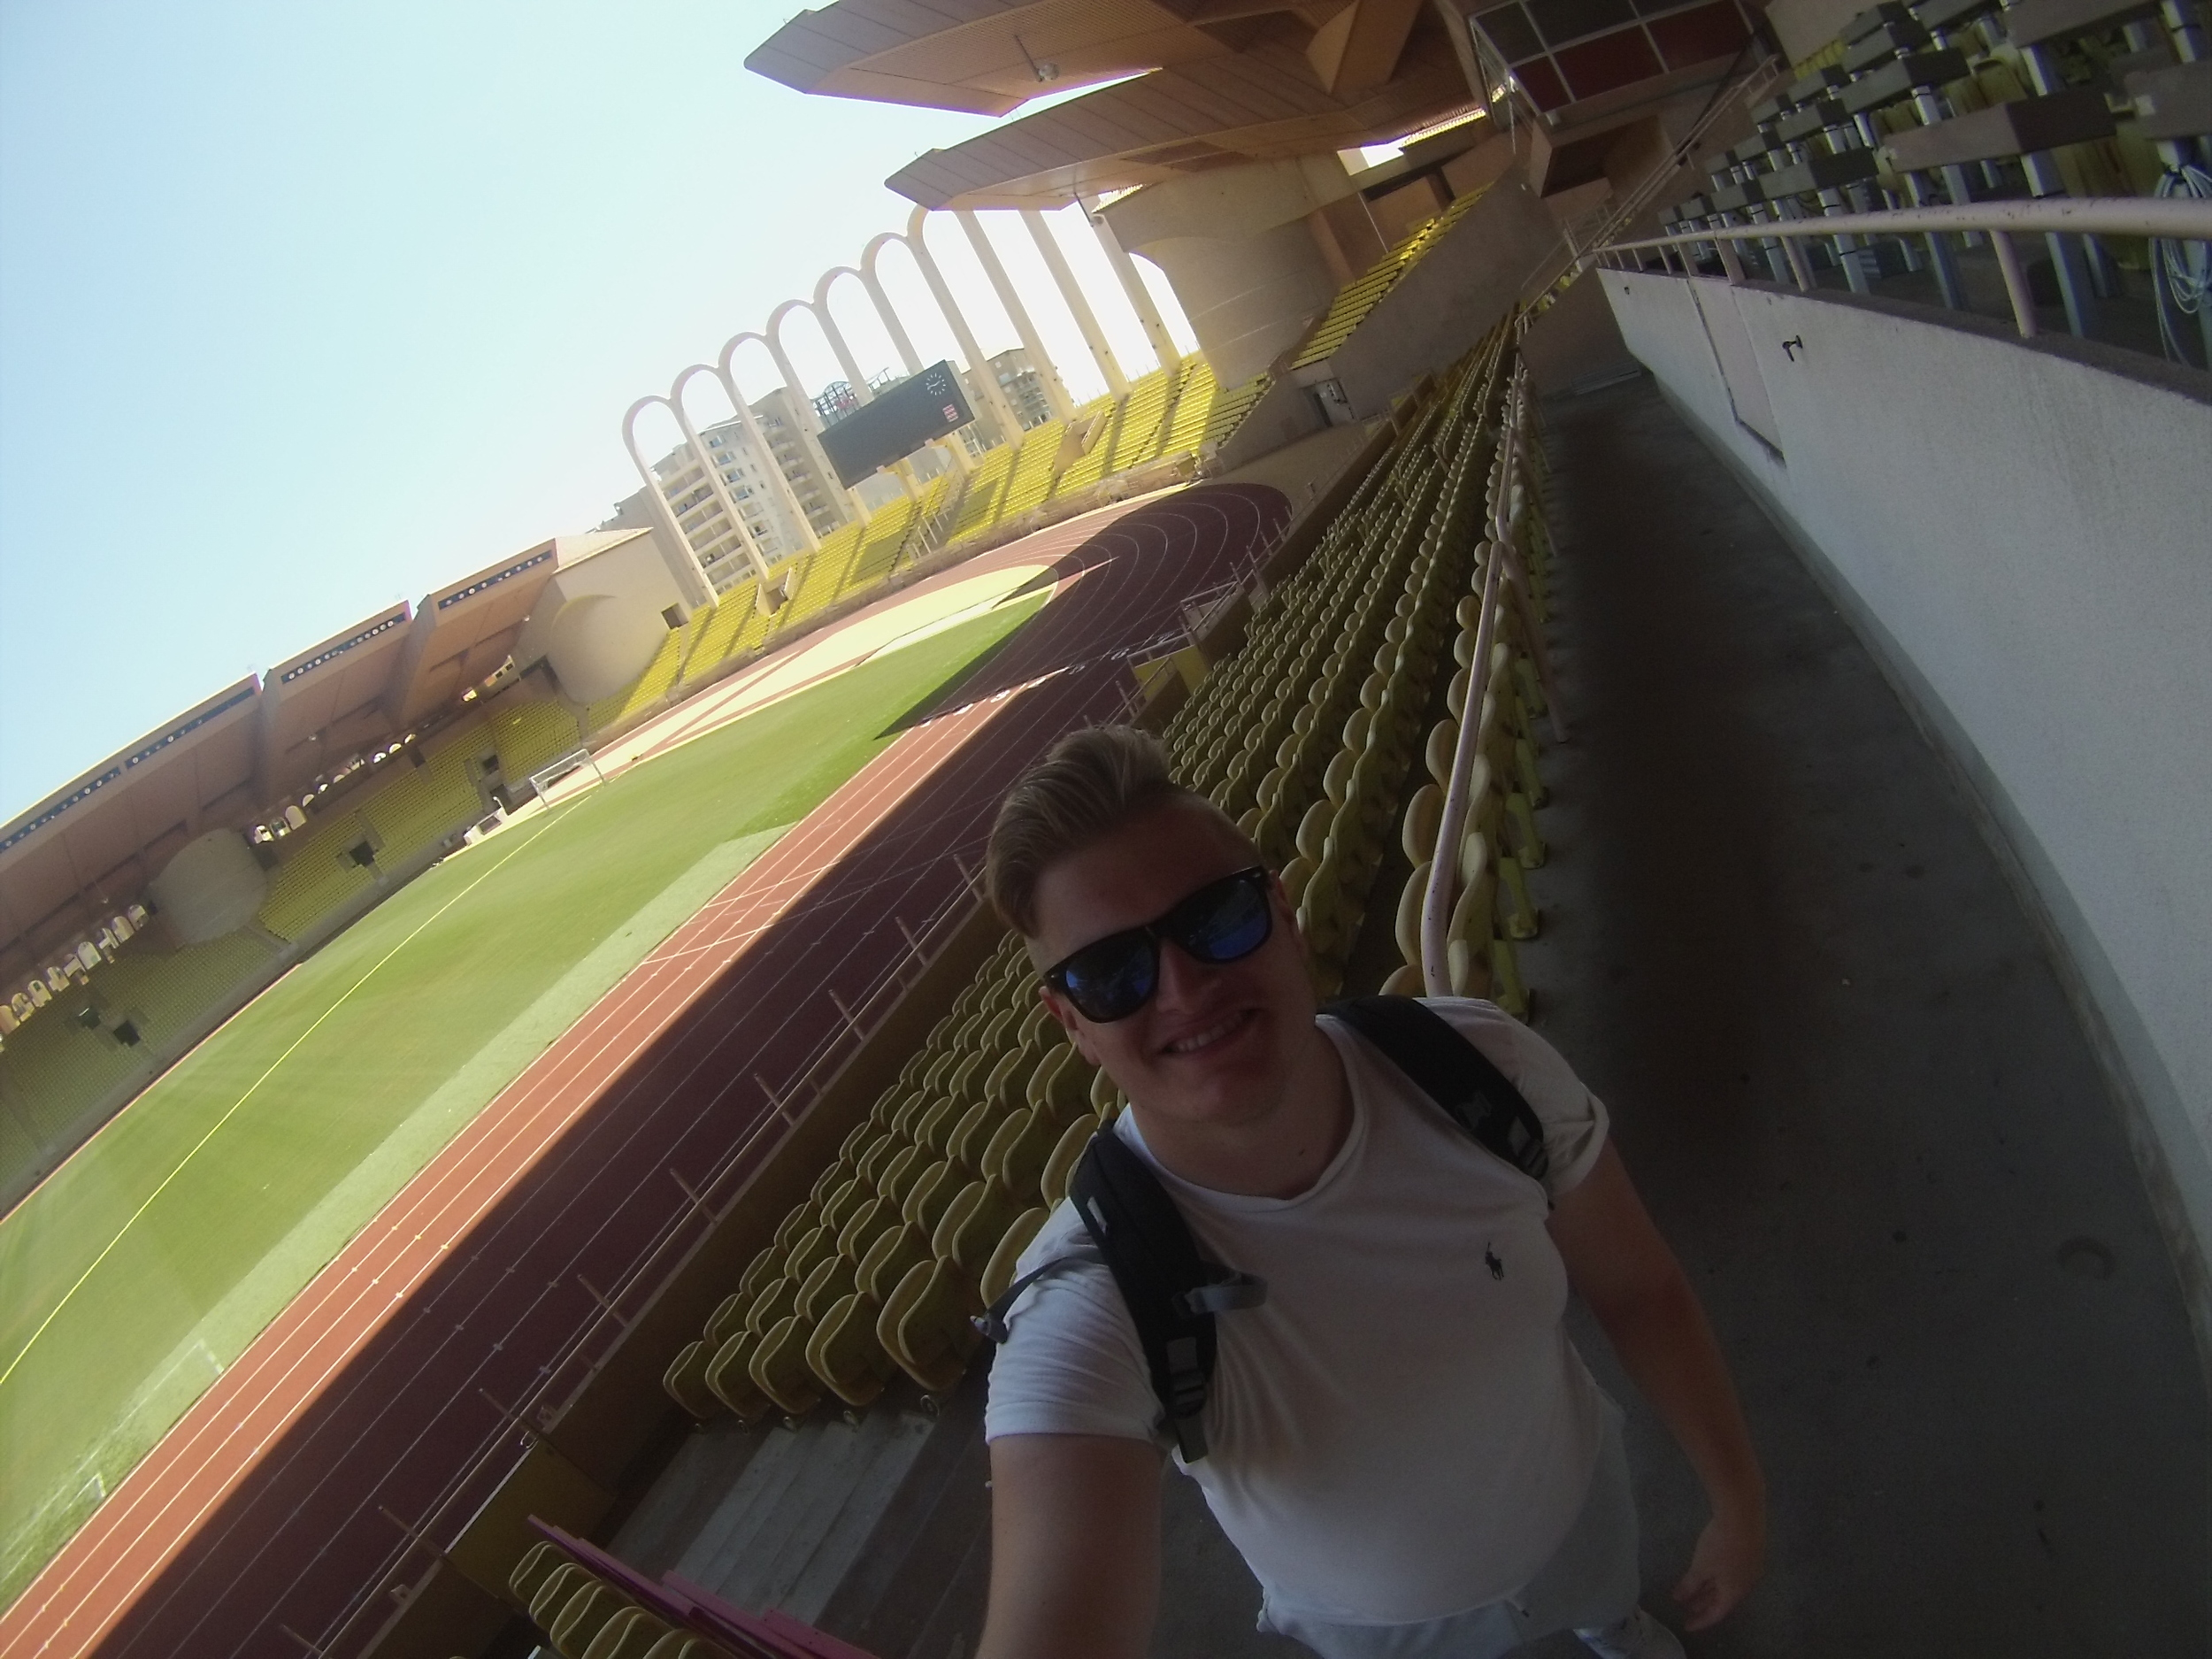 I loved visiting Stade Louis II, even if the tour wasn't as thorough as others I've been on.